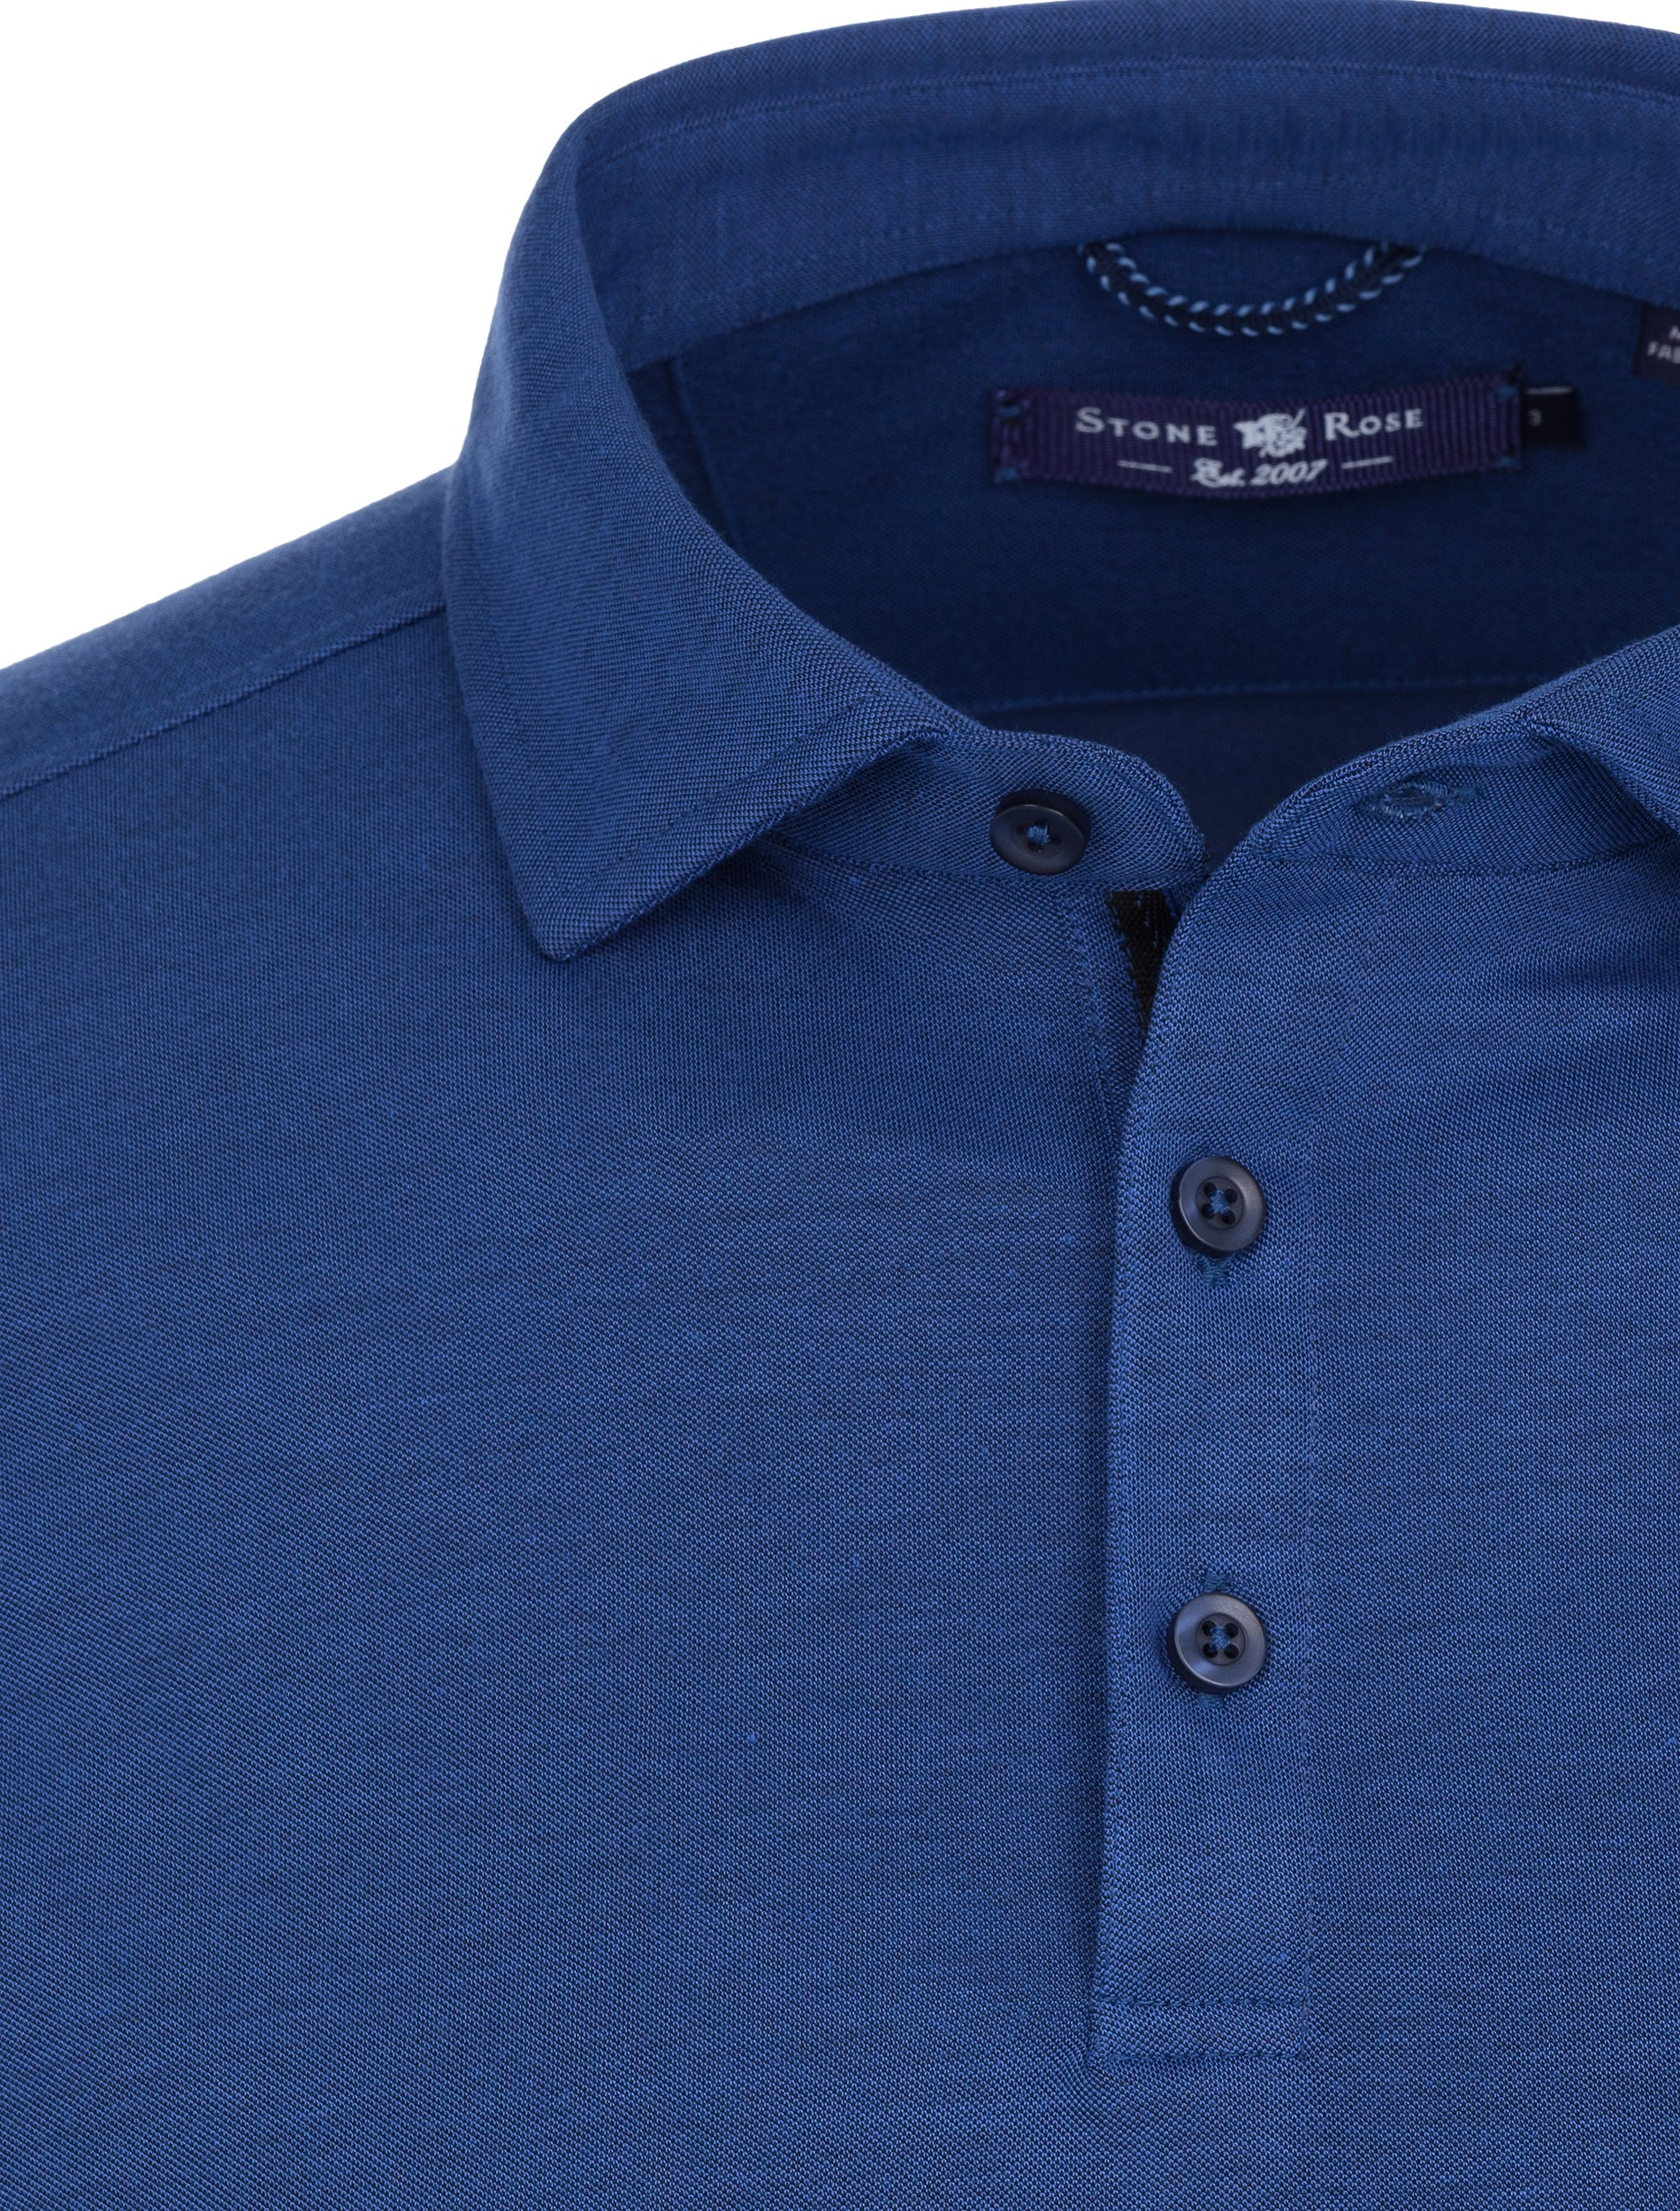 Navy Two Tone Knit Polo-Stone Rose